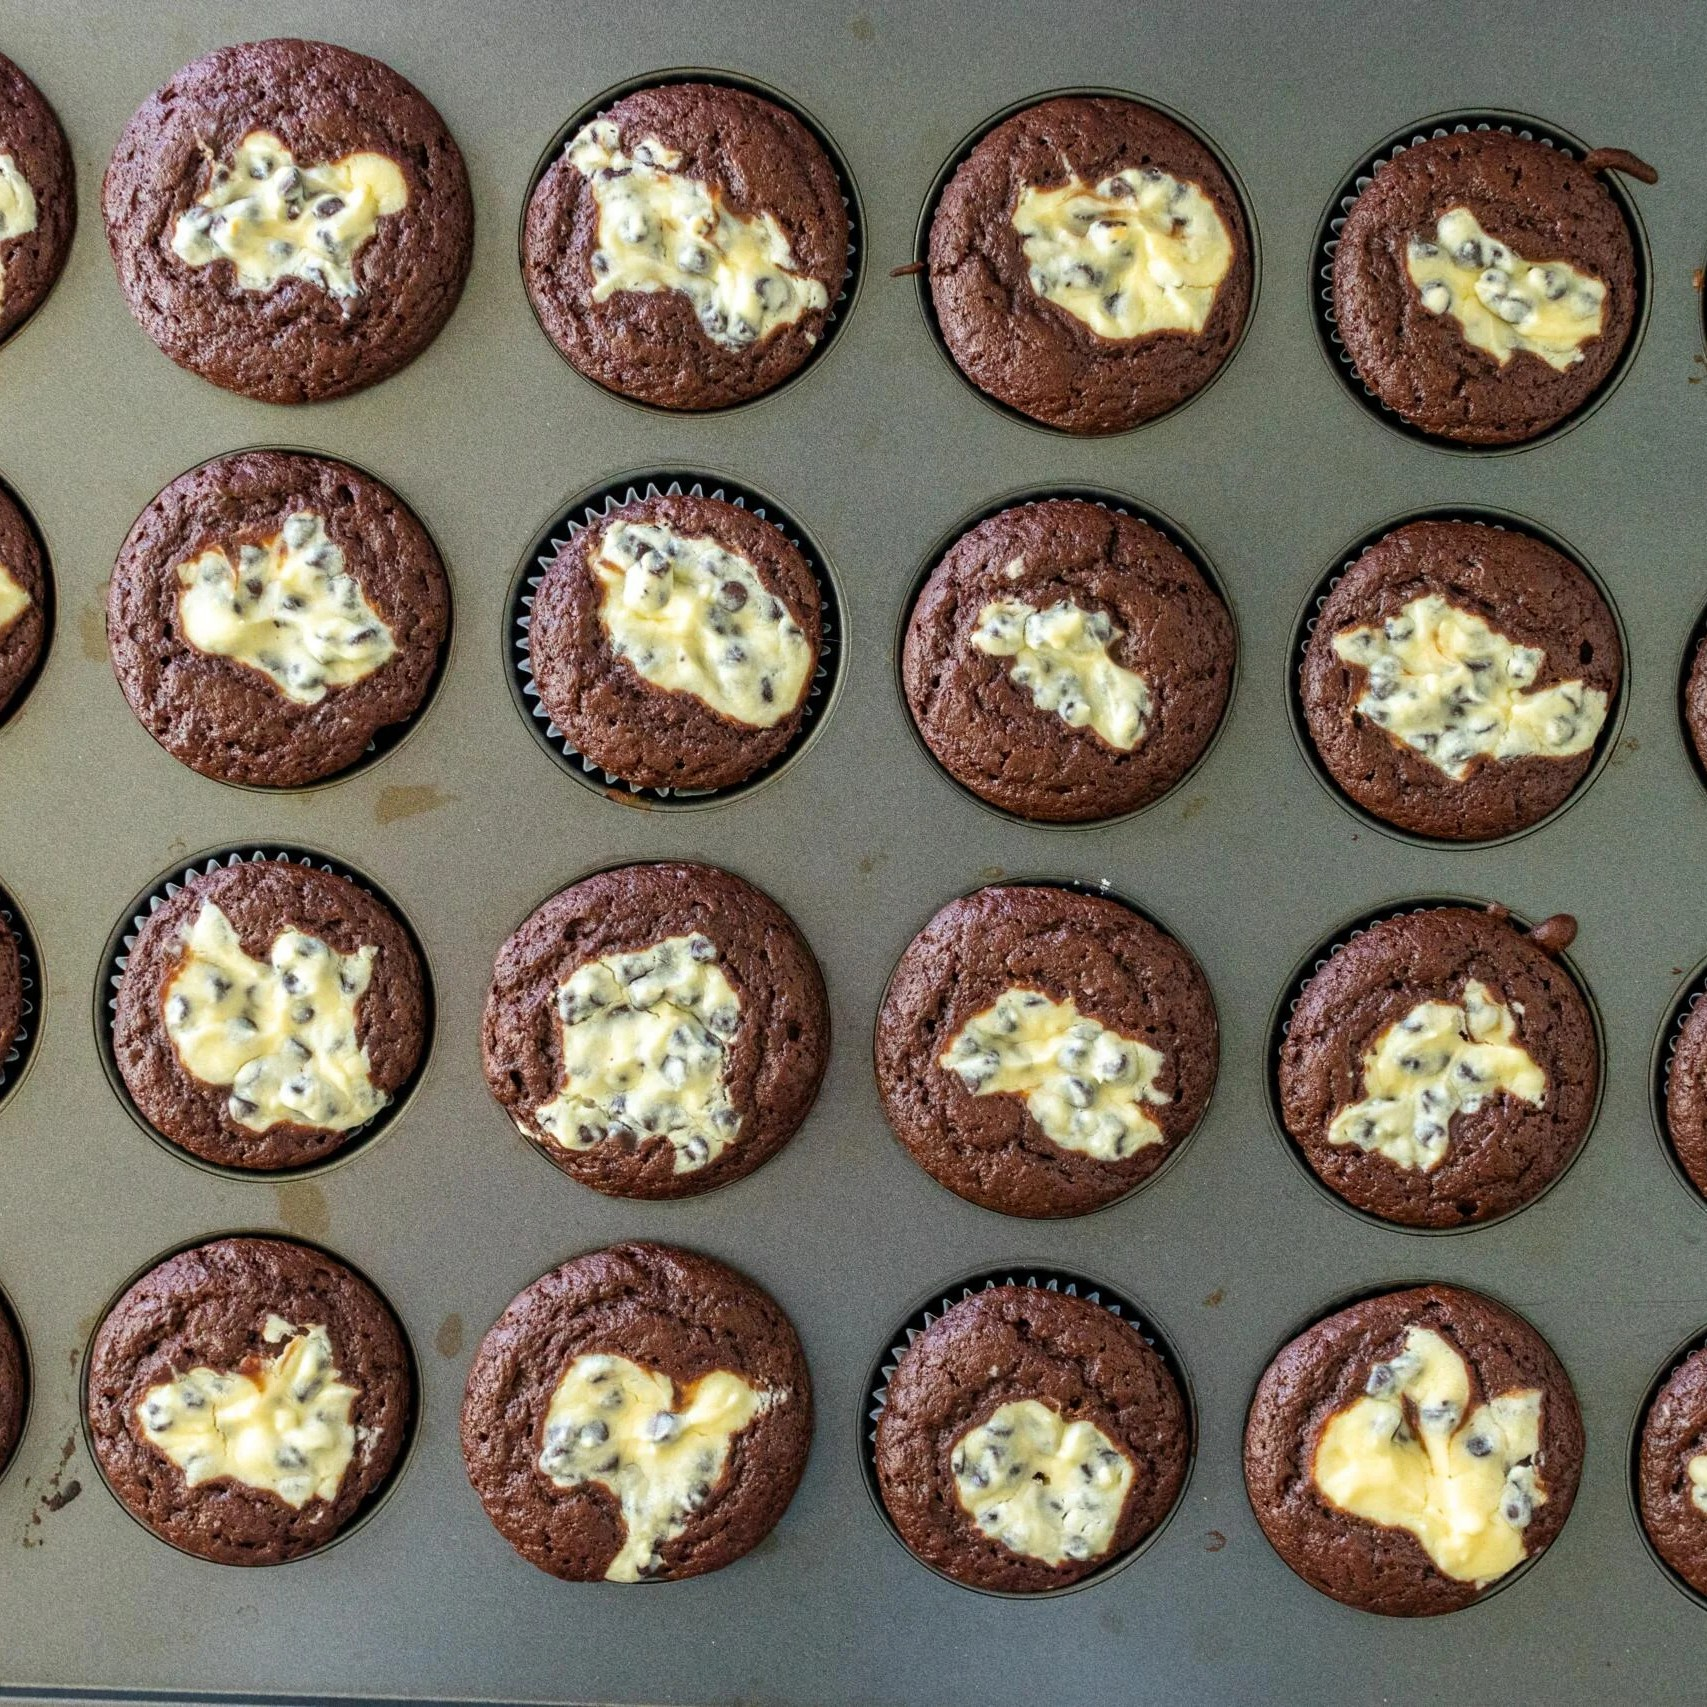 baked chocolate cupcakes in a baking pan